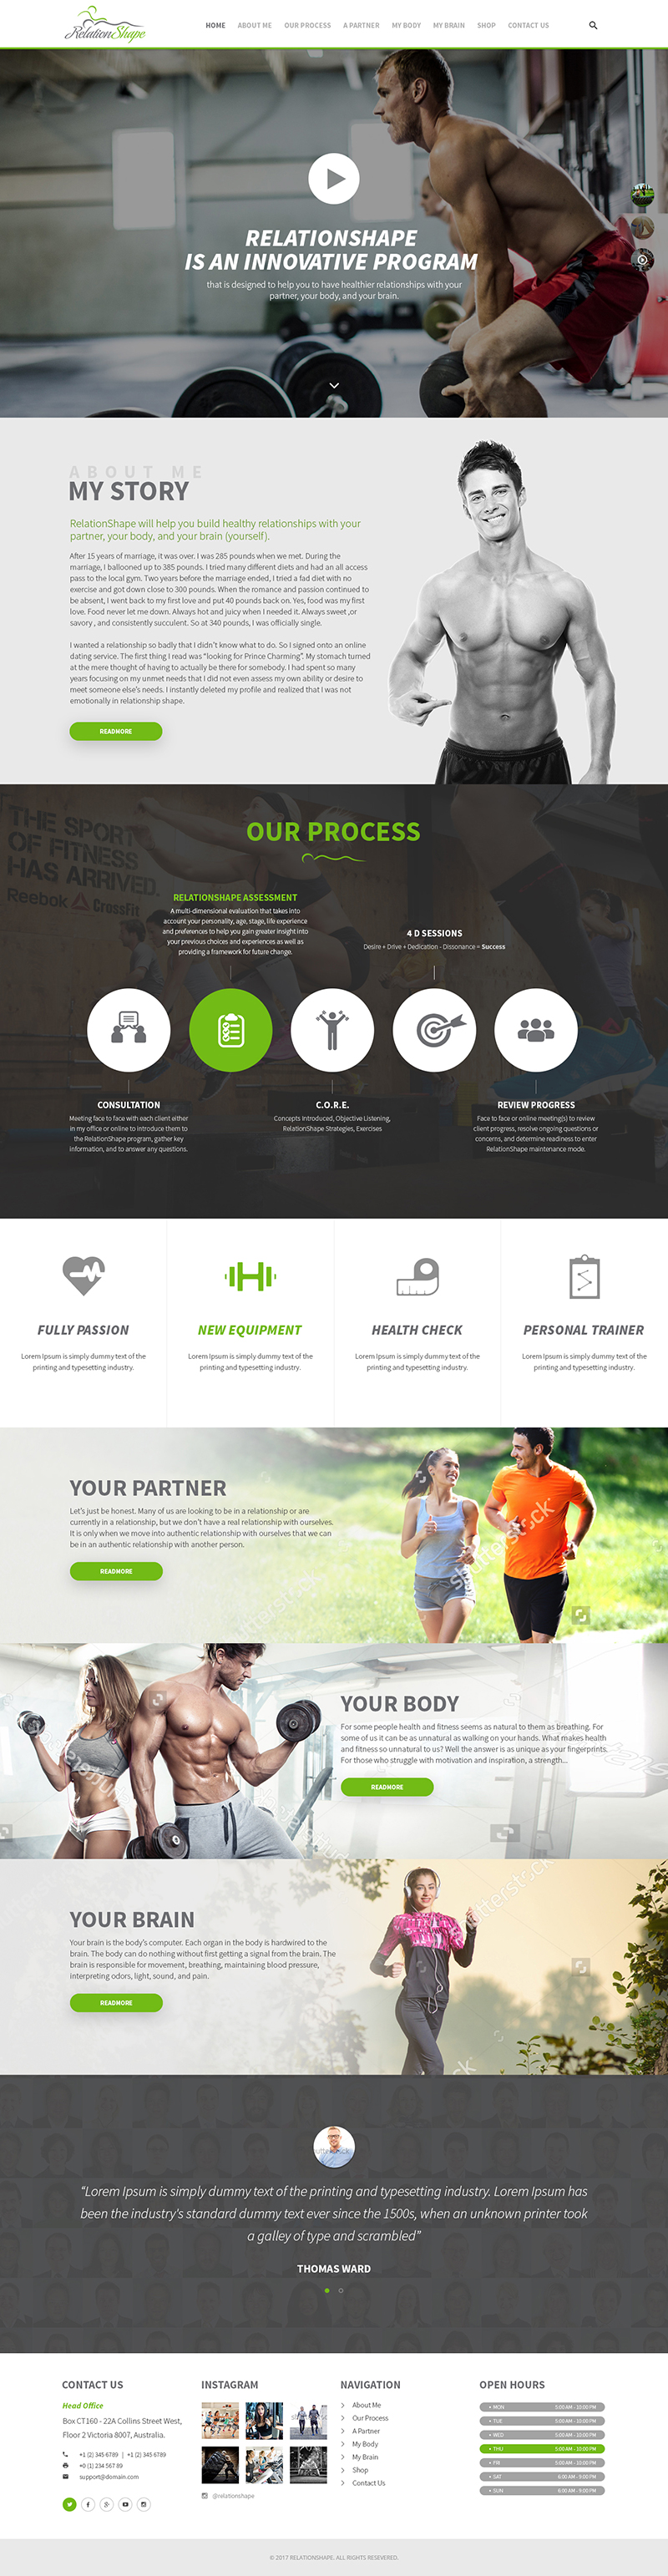 Custom Website Design for Relation Shape - Logo Design Deck